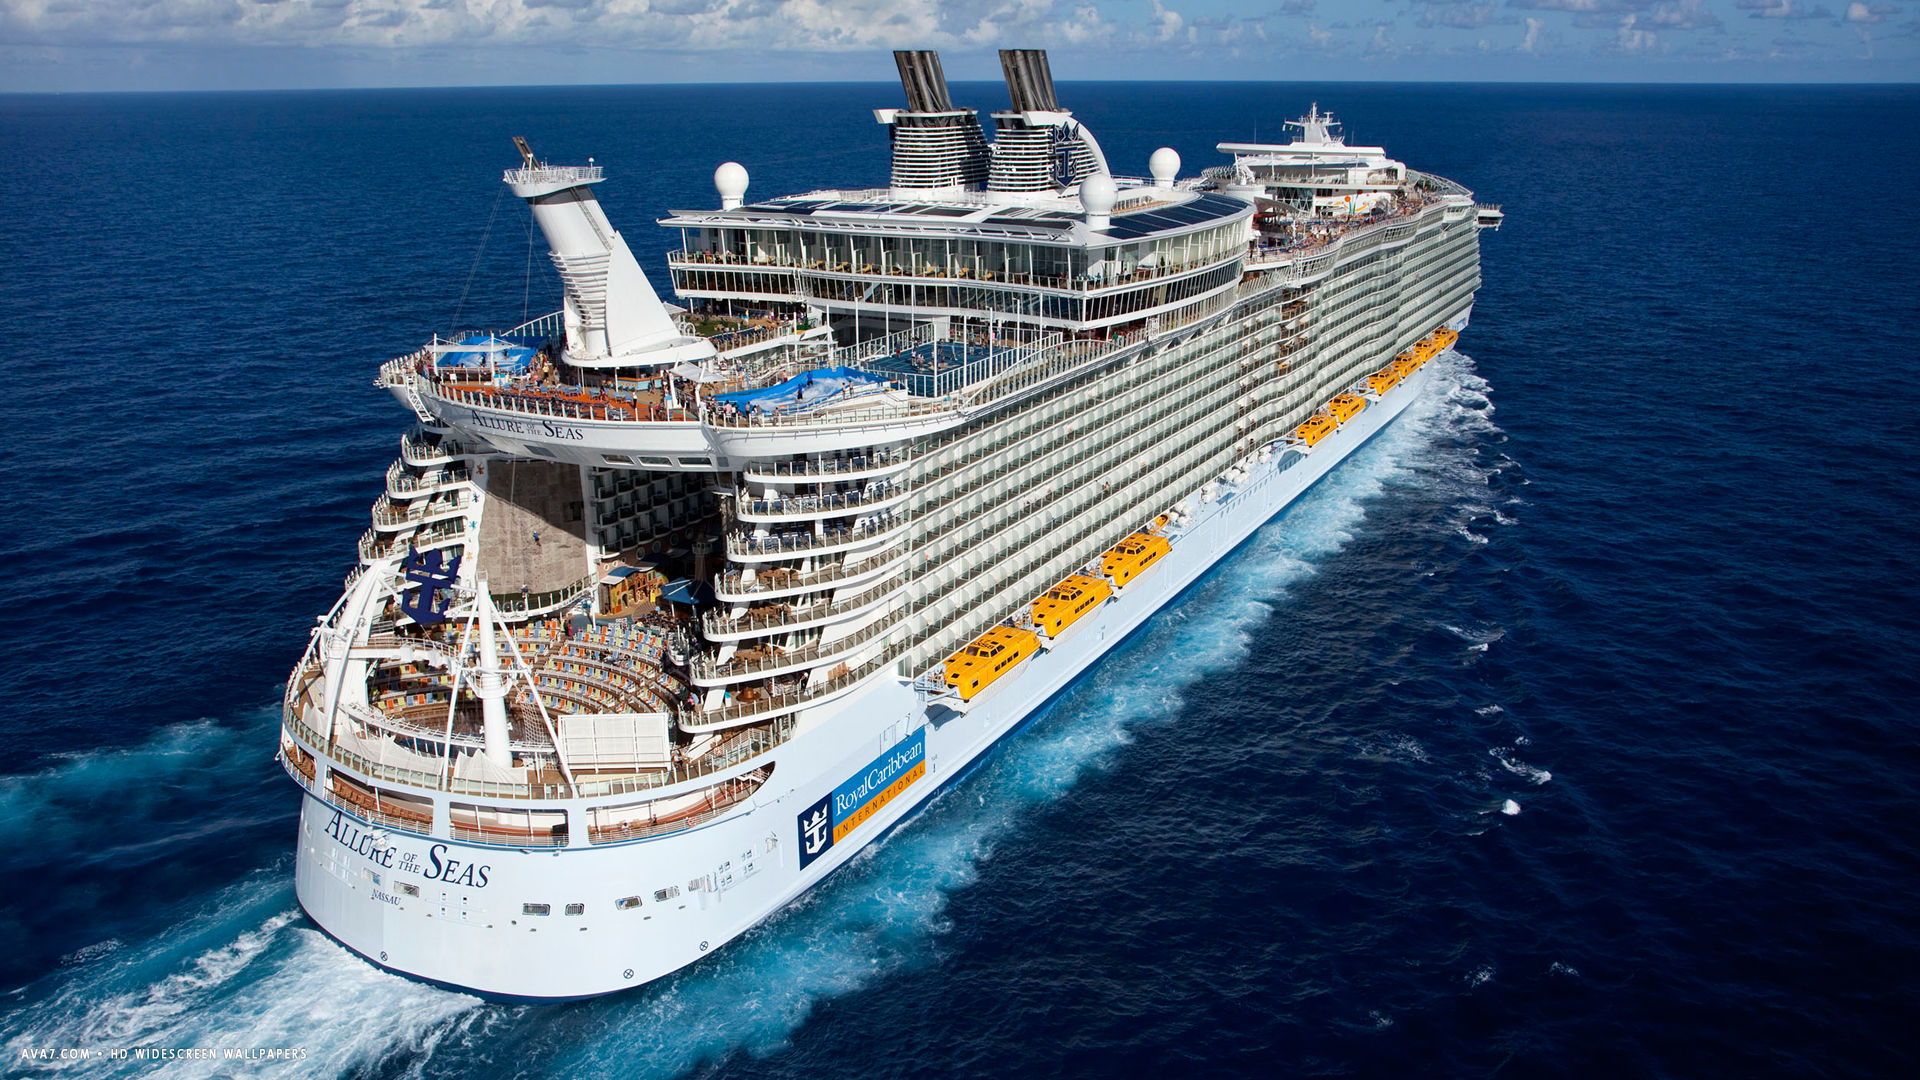 allure of the seas cruise ship